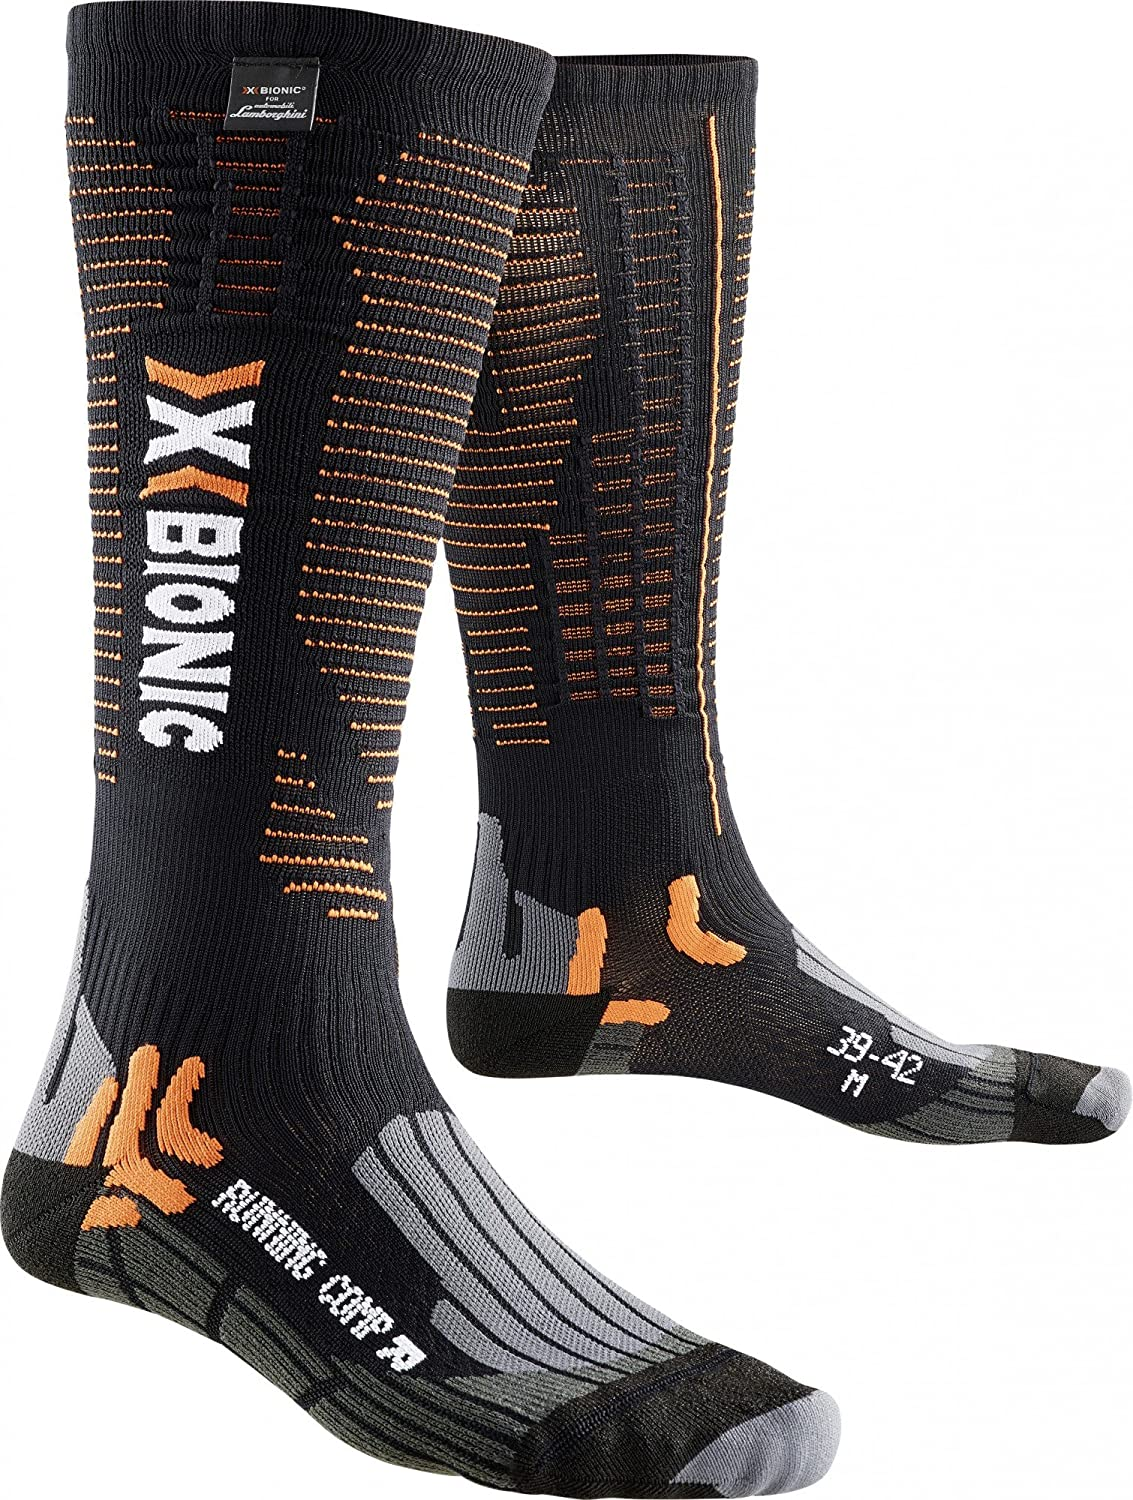 X-Socks Homme Running Competition for Lamborghini Chaussettes, Homme, Running Competition for Lamborghini